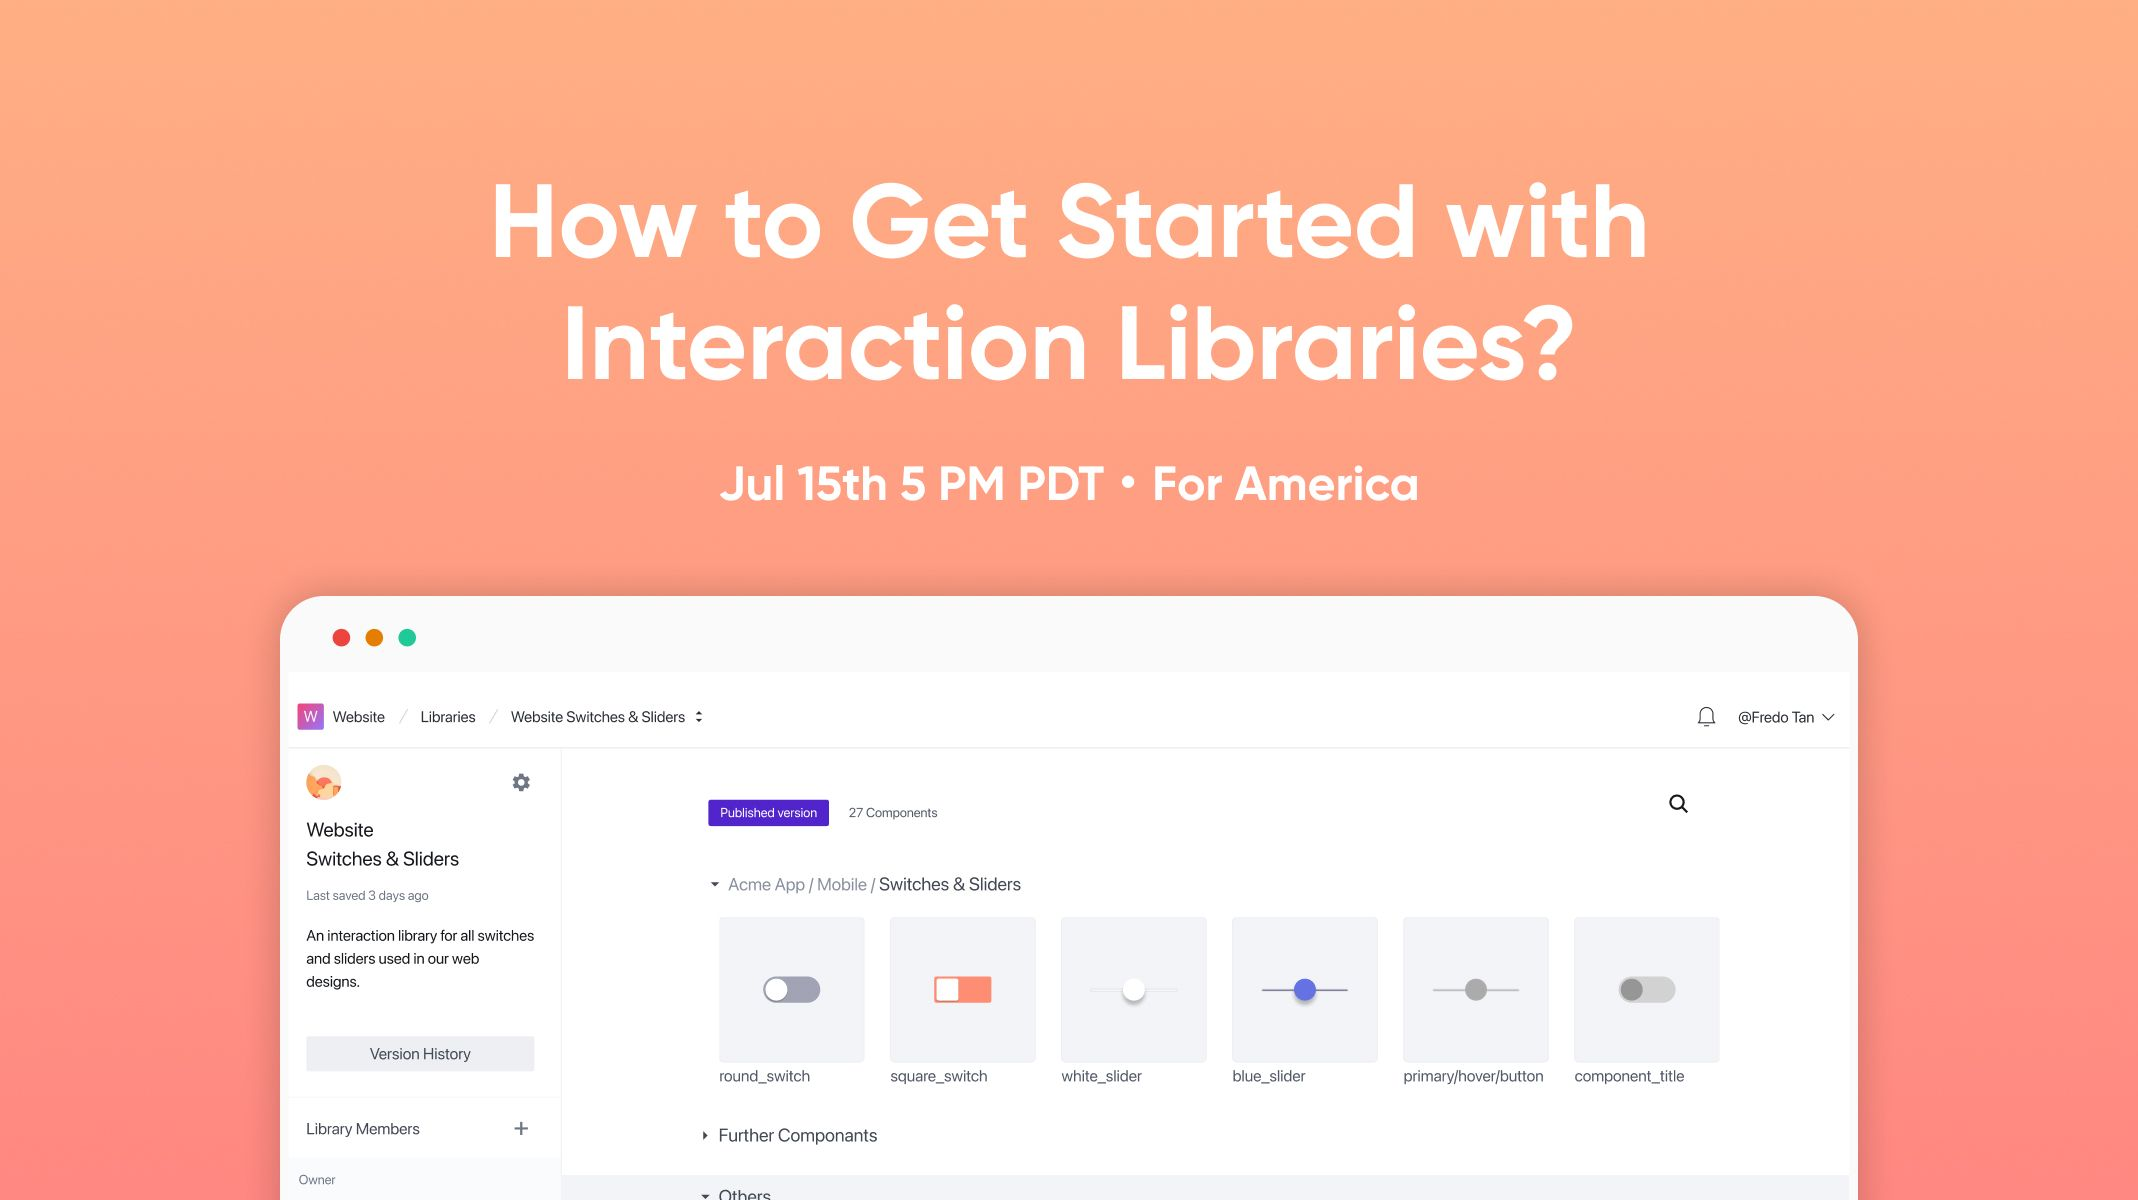 Get started with interaction libraries workshop thumbnail